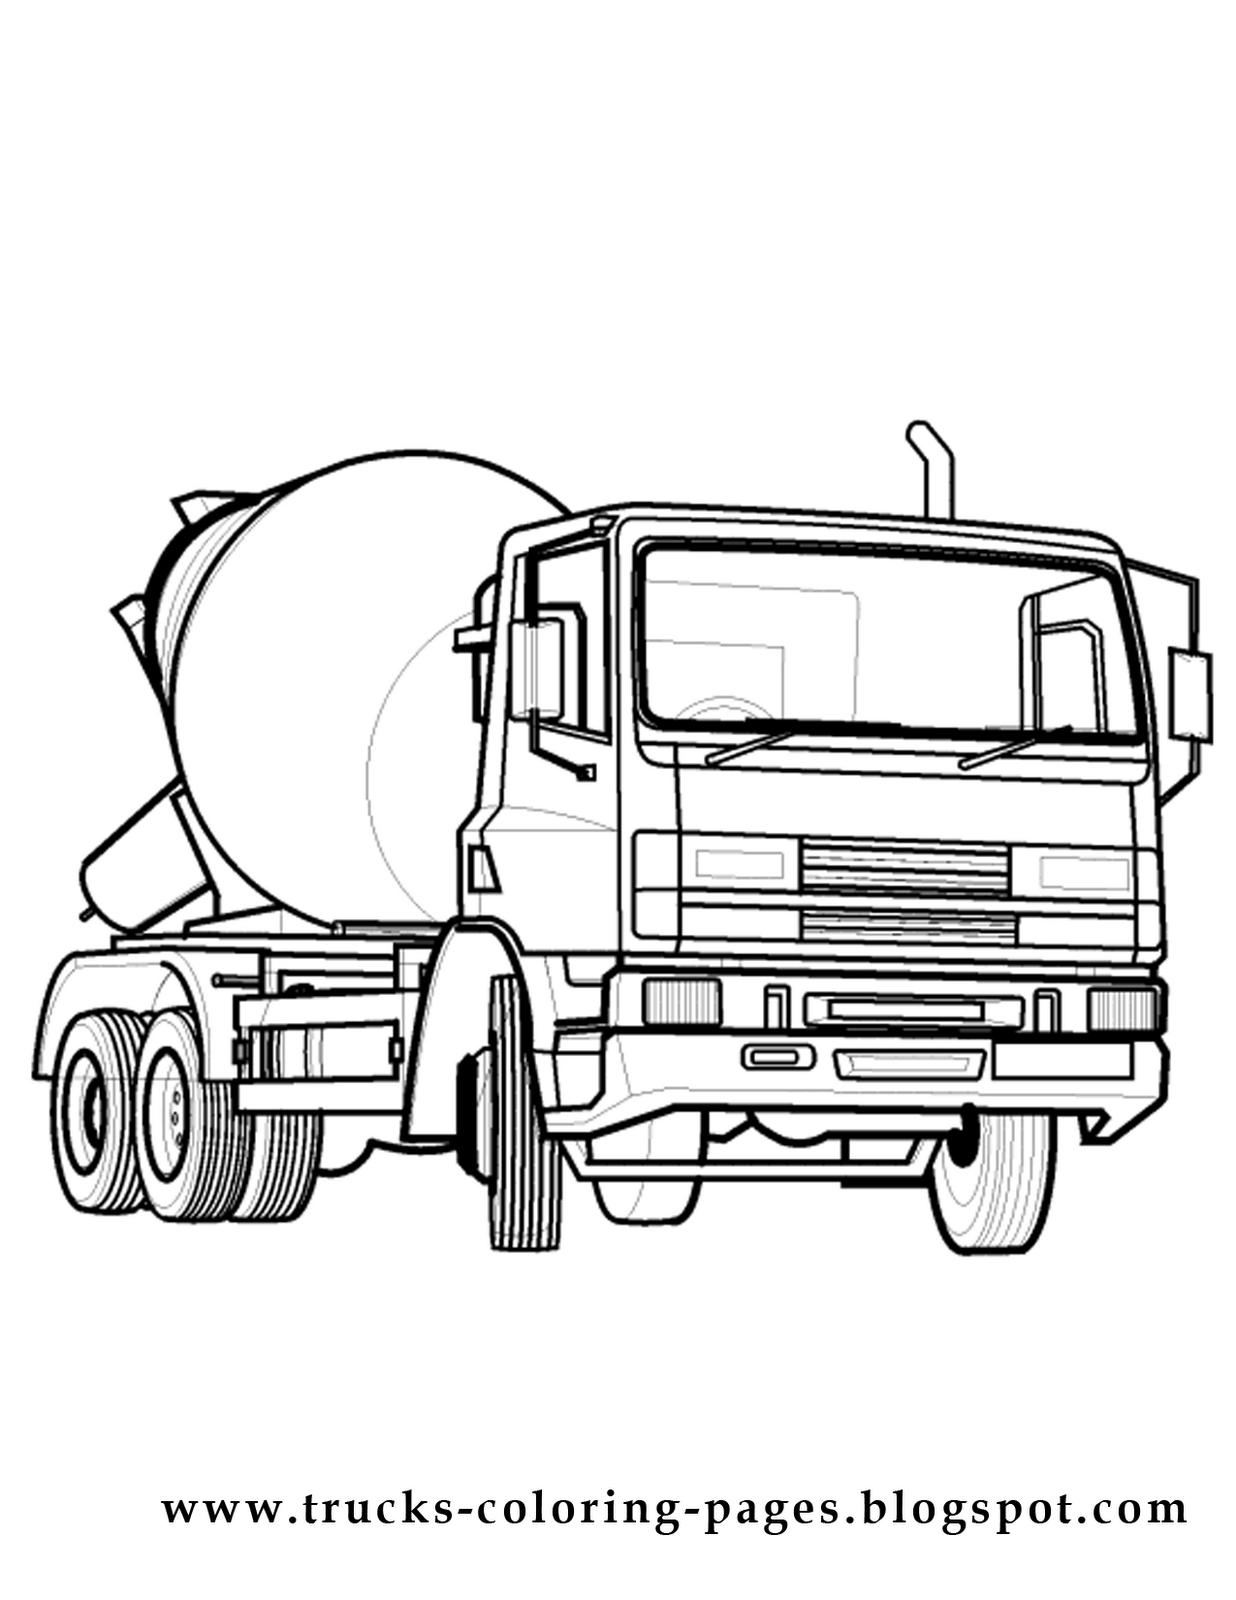 coloring pages of cars and trucks printable coloring pages of cars and trucks 9 image cars of and pages coloring trucks